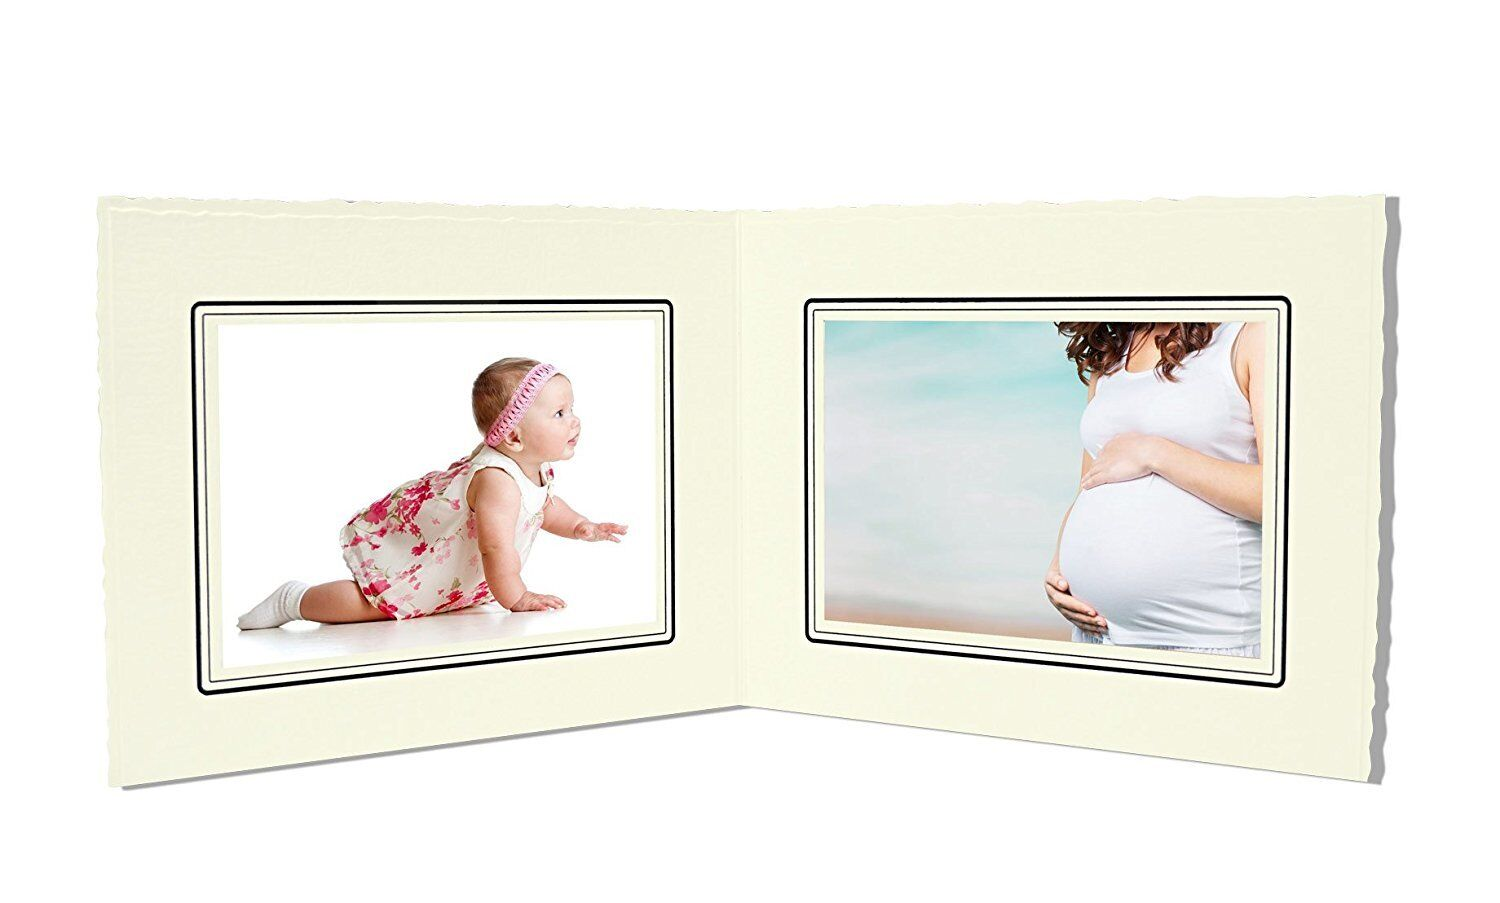 Wholesale cardboard picture frame 4x6 | Compare Prices at Nextag